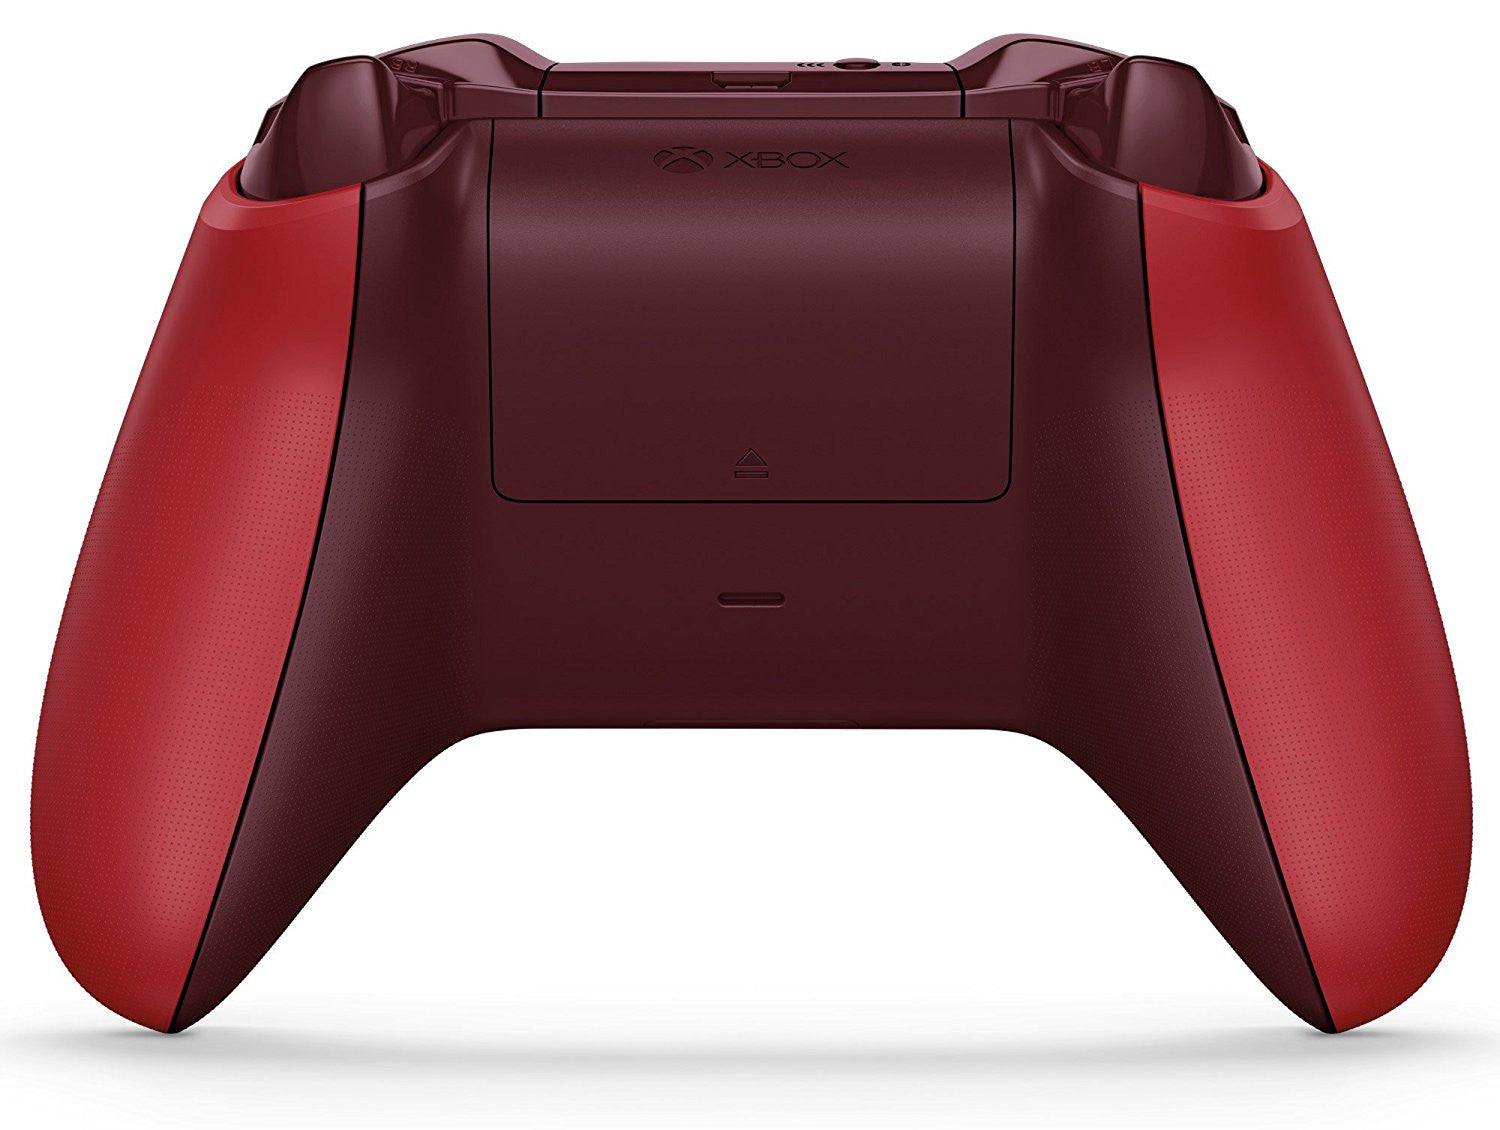 Xbox One Red Controller - Console Accessories by Microsoft The Chelsea Gamer